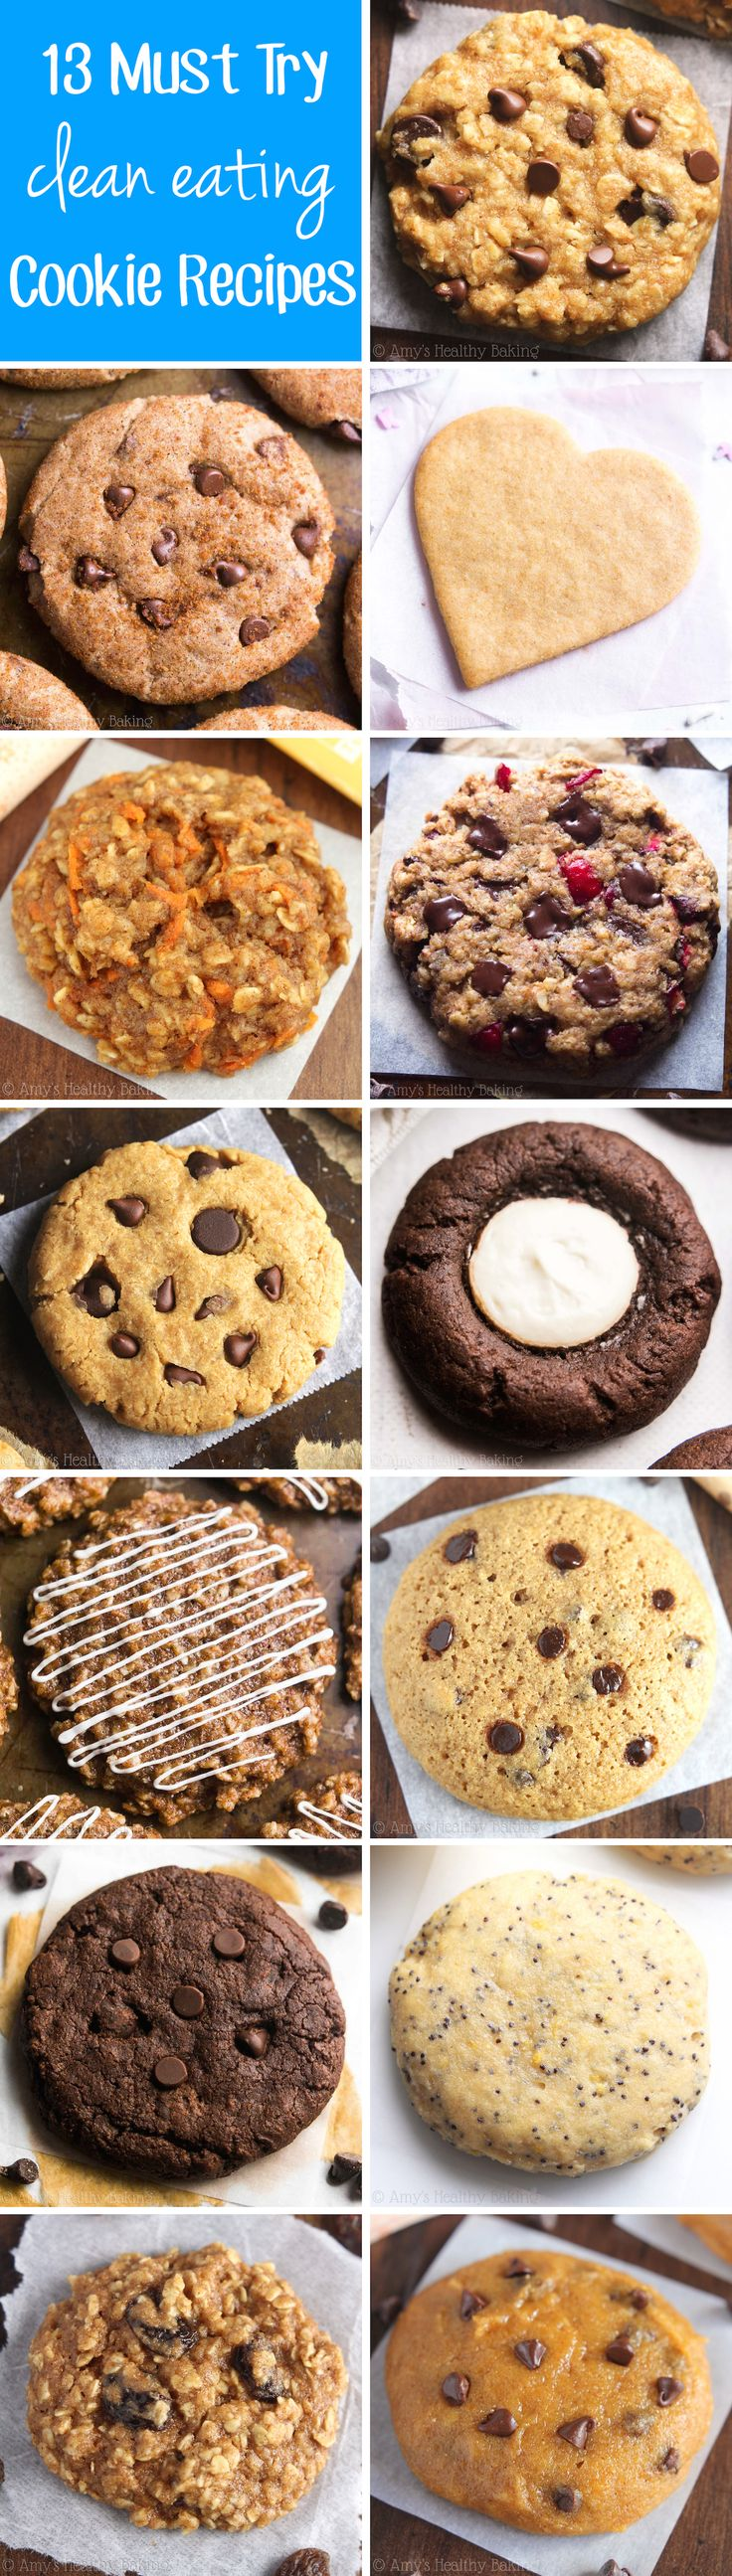 13 Must Try Clean Eating Cookie Recipes -- so easy & good! They're all made with NO butter, refined flour or sugar! And they don't taste healthy at all!